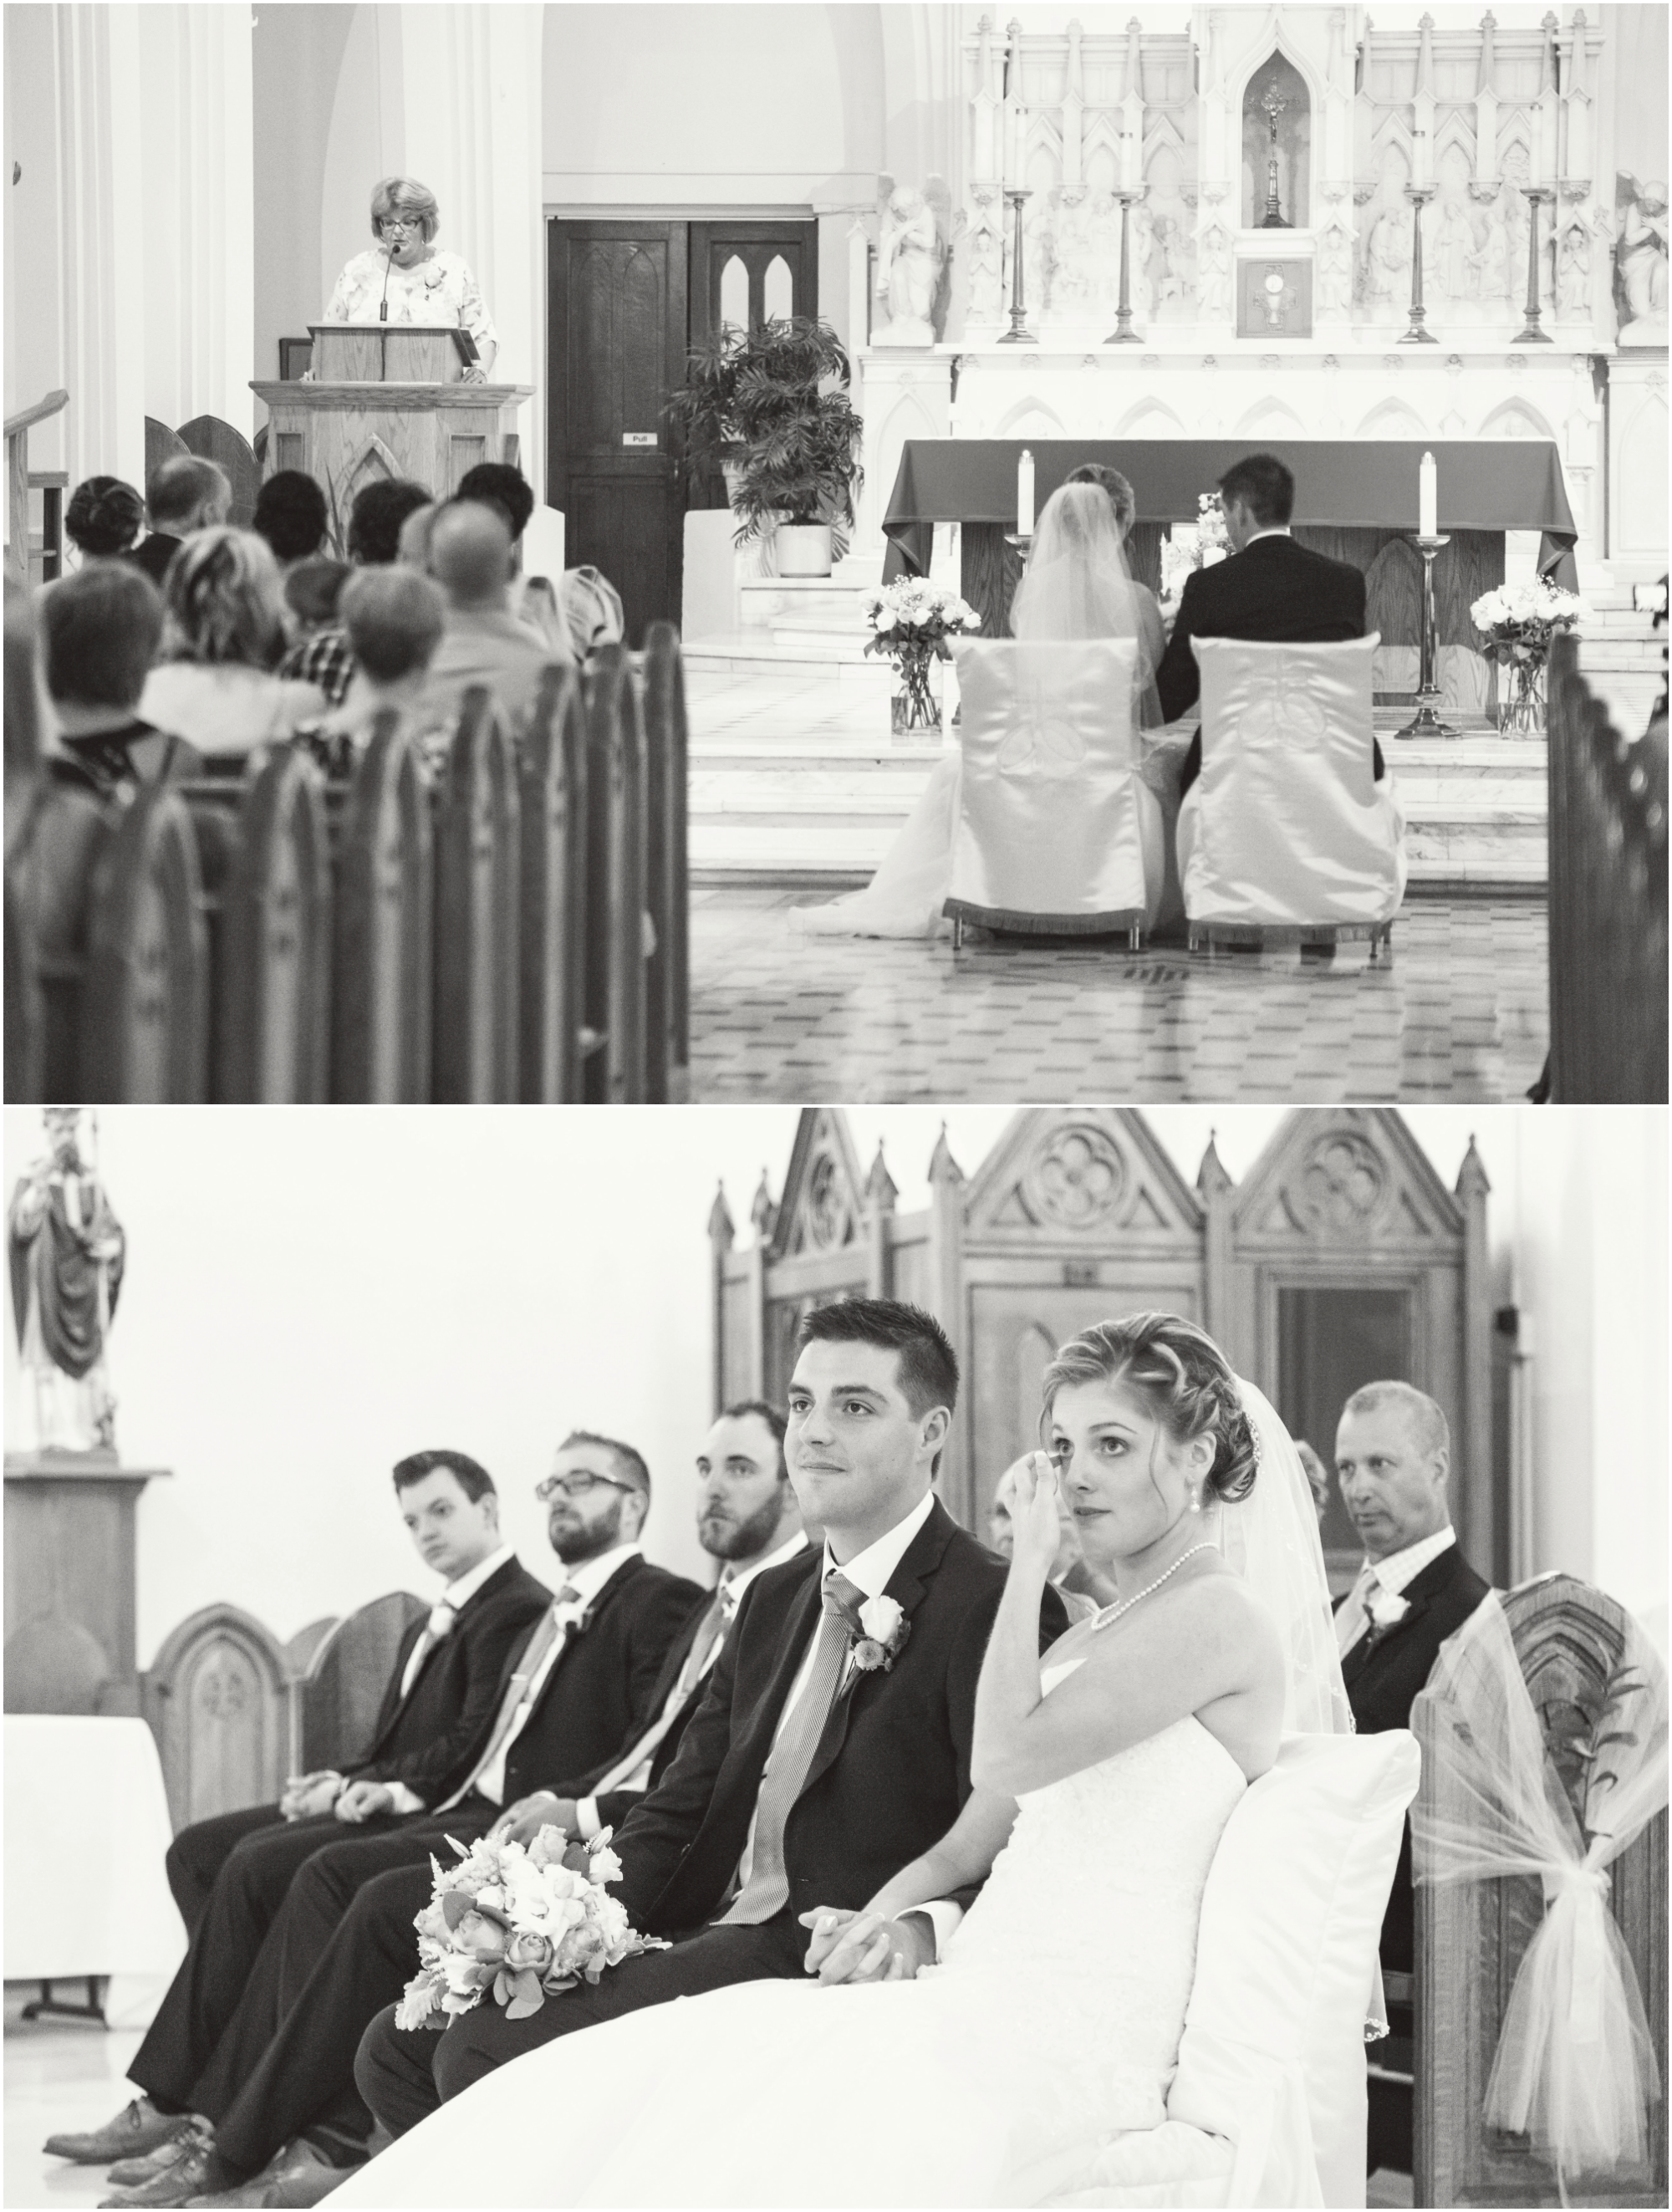 st_patricks_church_wedding_04.png